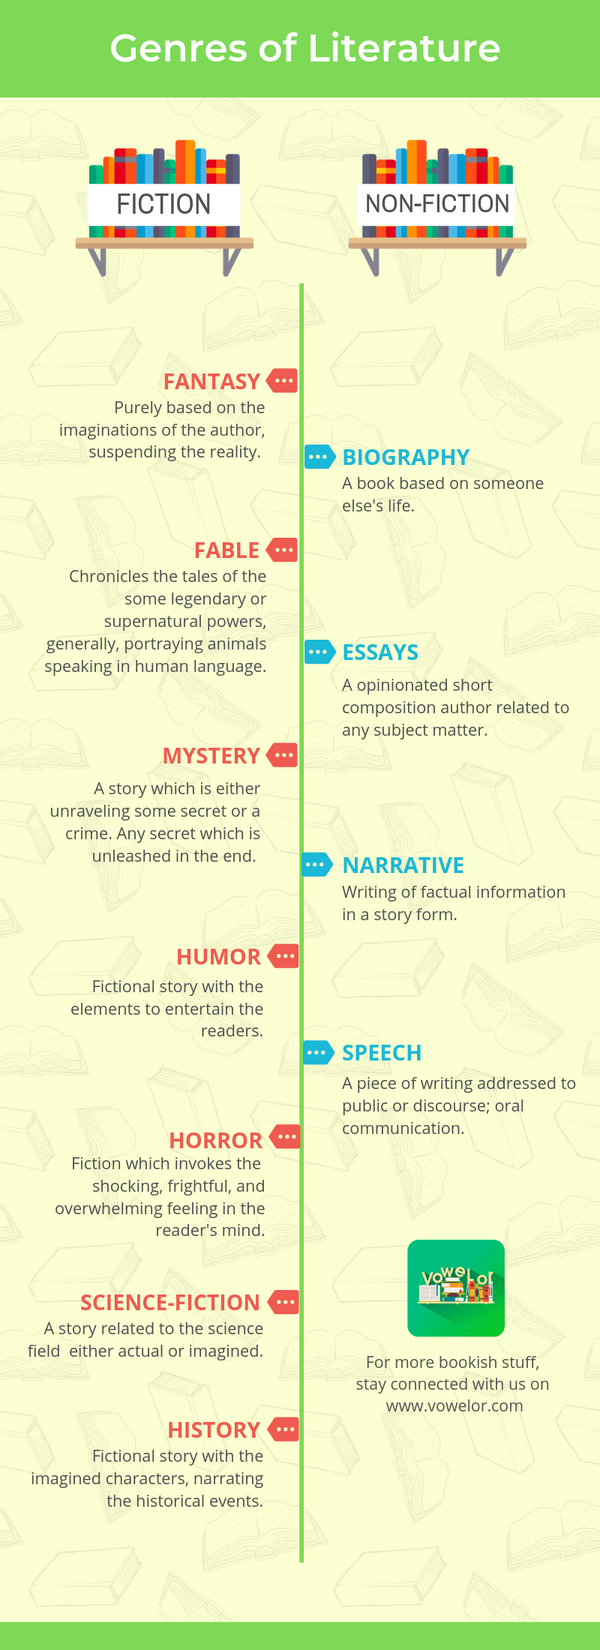 Types of Genres of Literature Inforgraphic